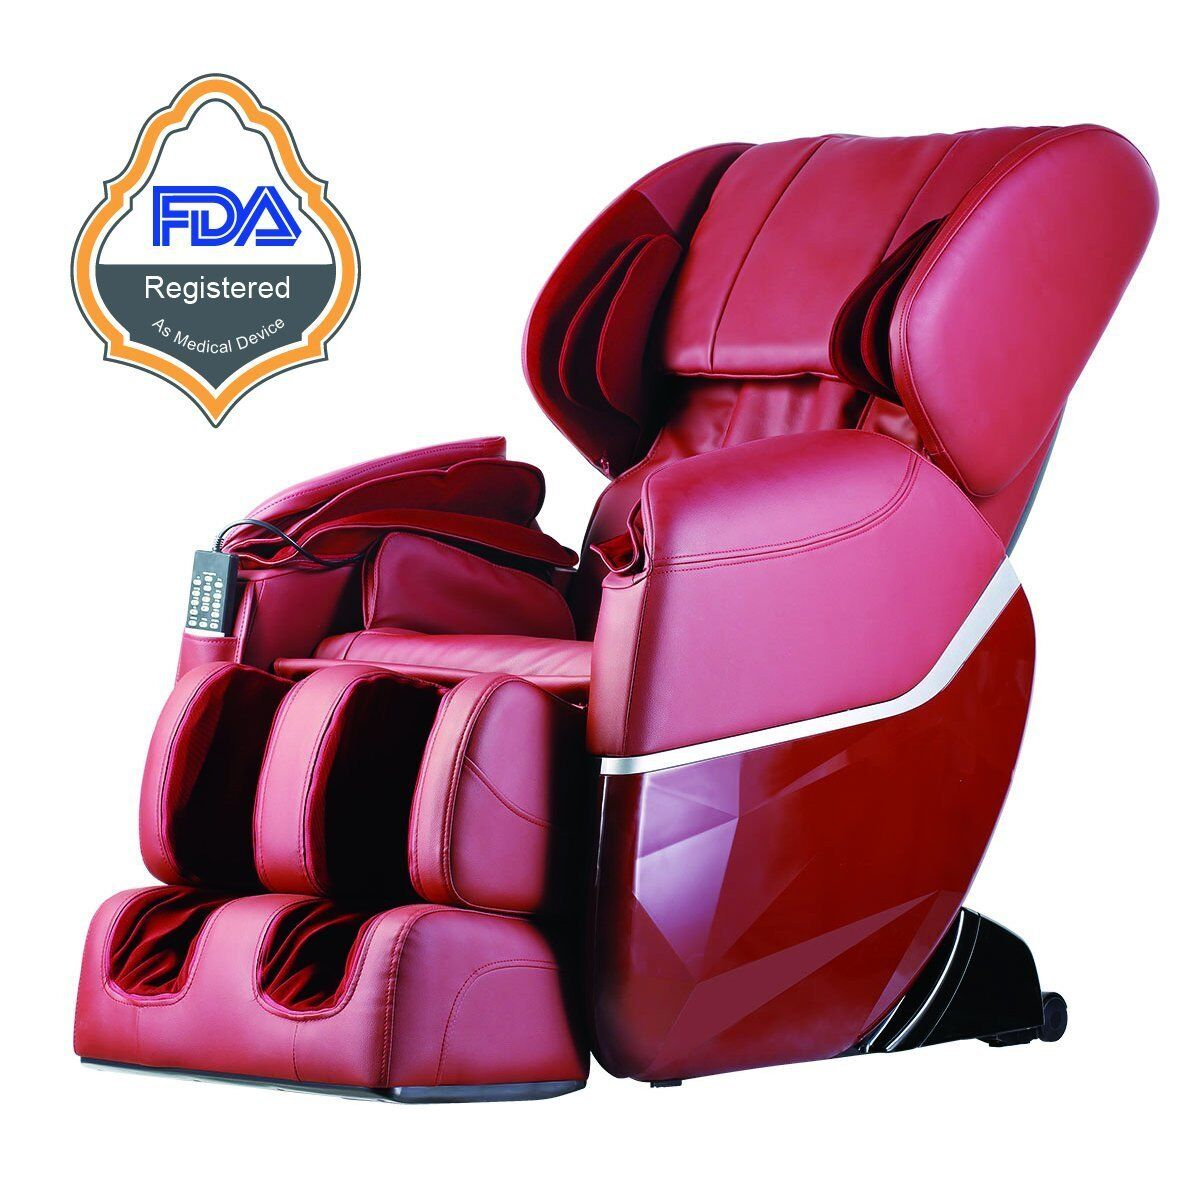 New Electric Full Body Shiatsu Massage Chair Recliner Zero Gravity w/Heat 77 Burgundy